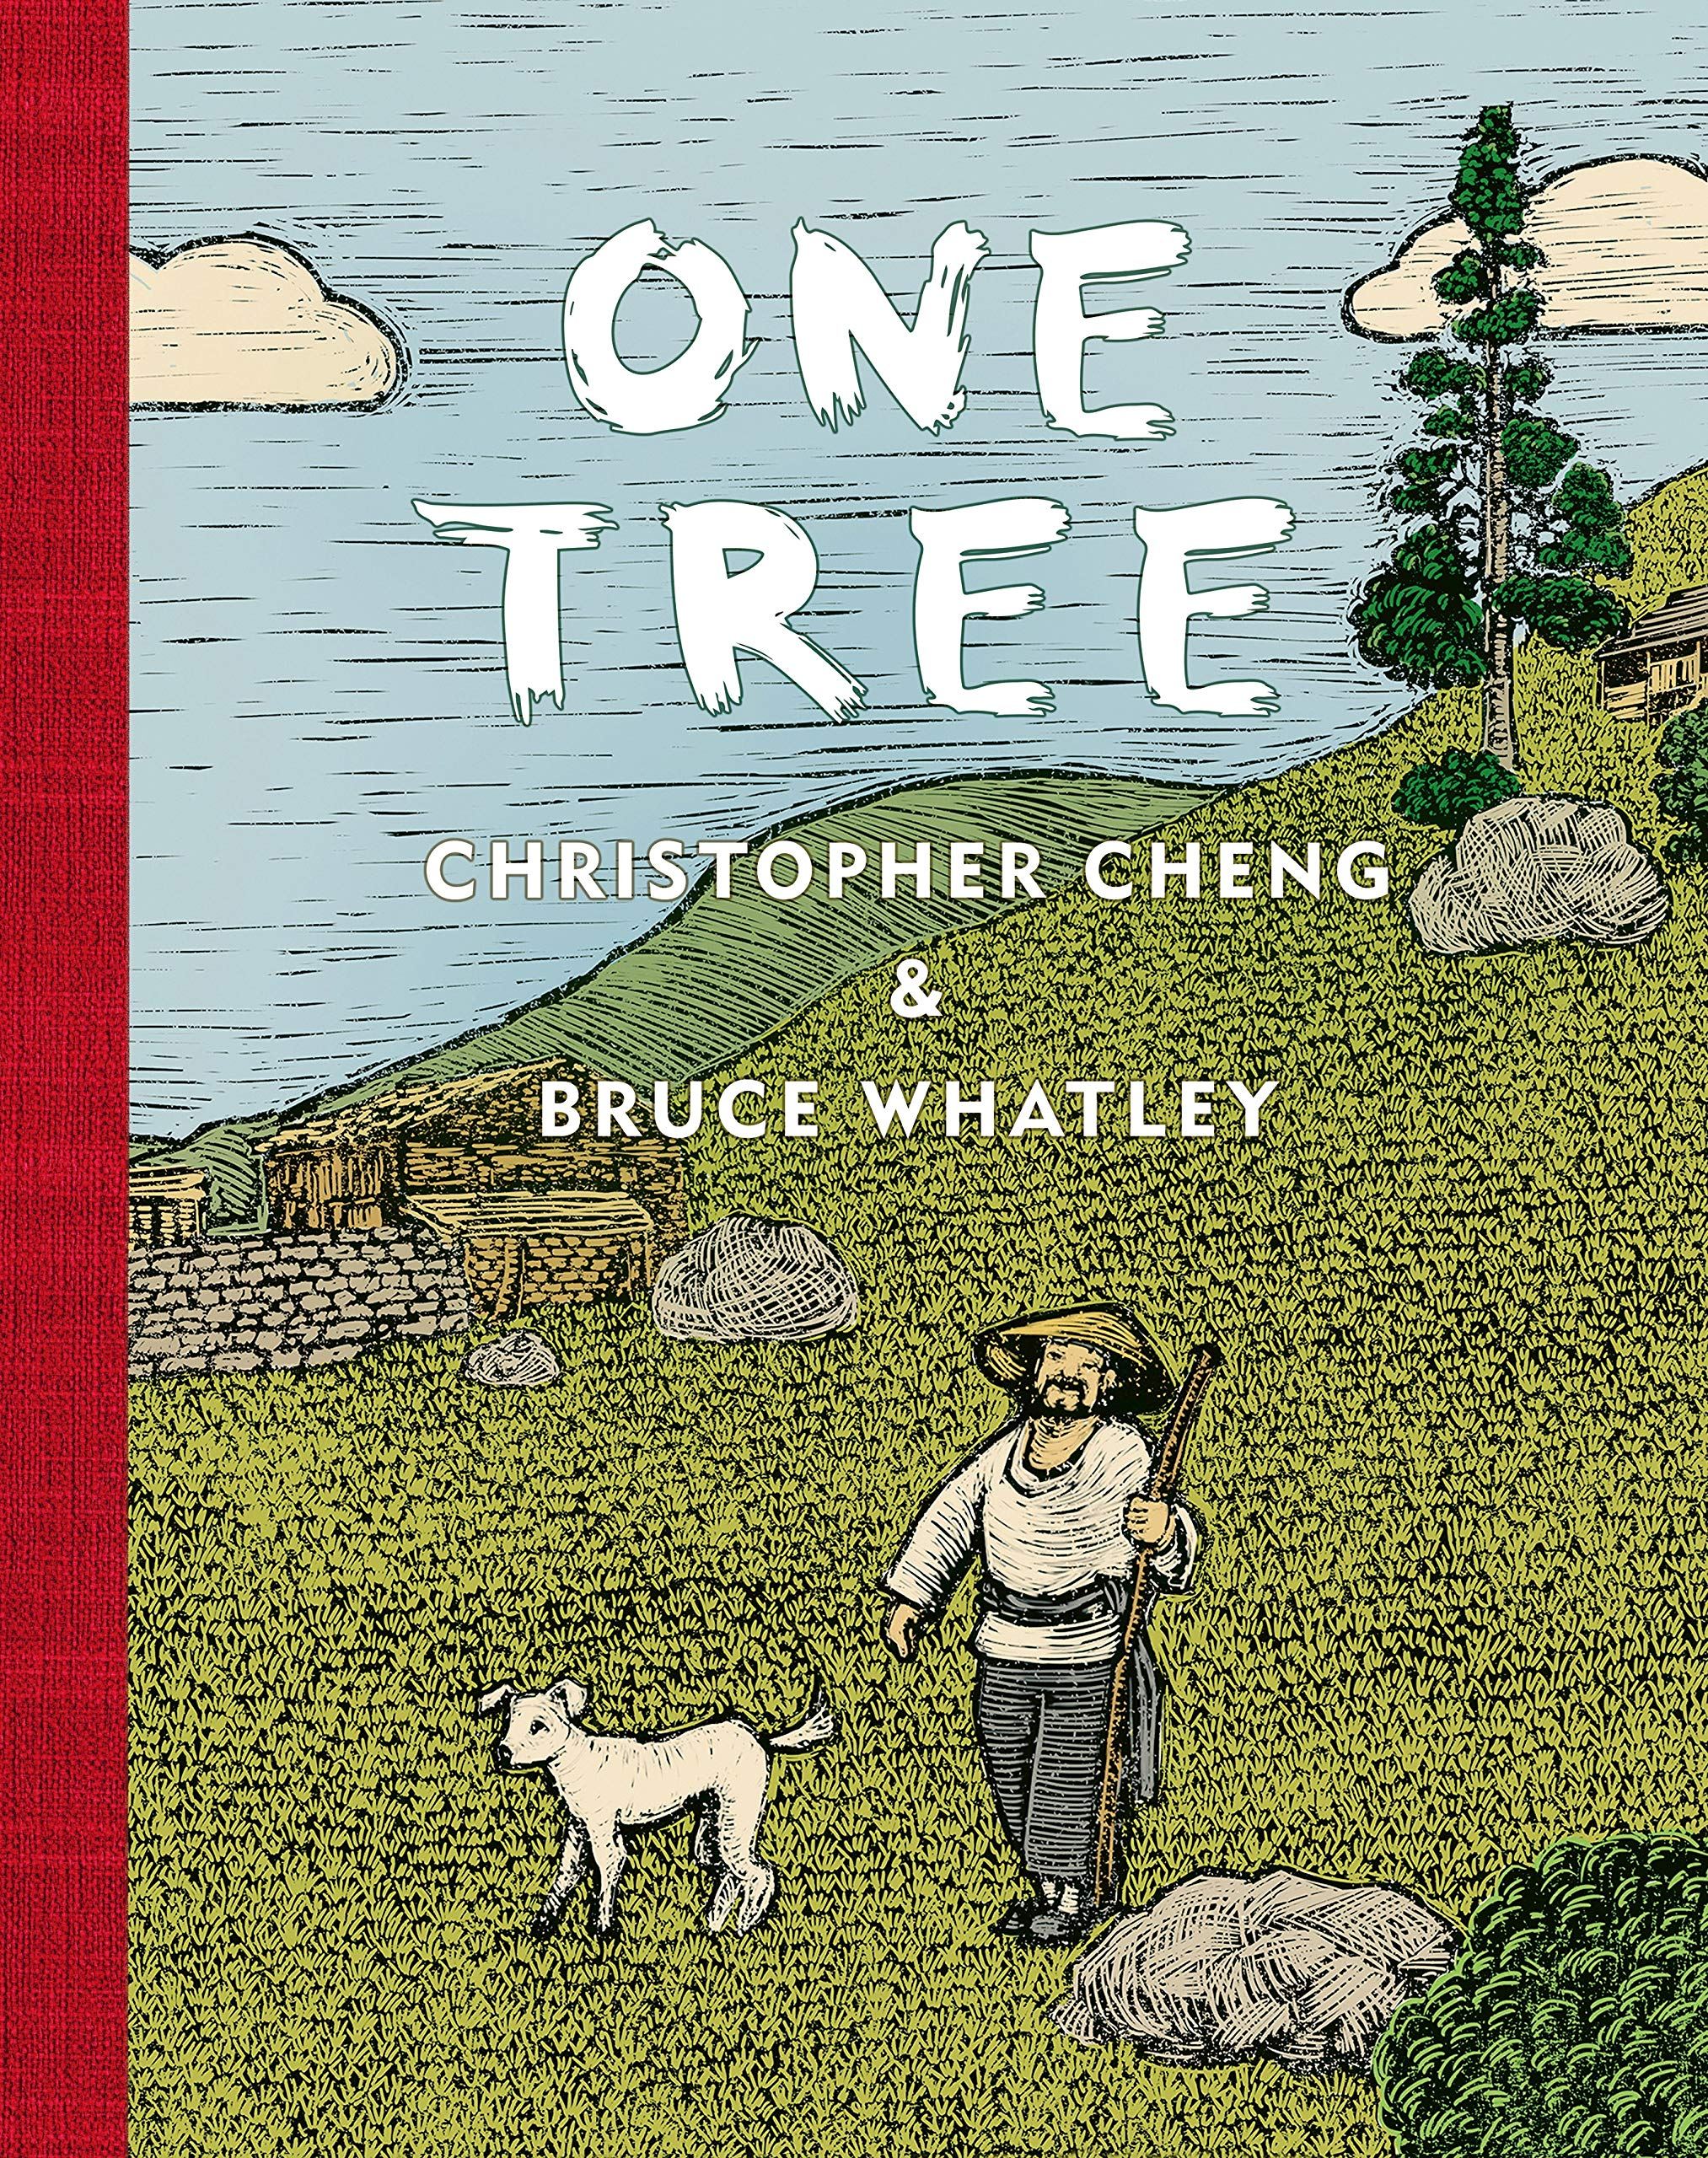 Image result for one tree book